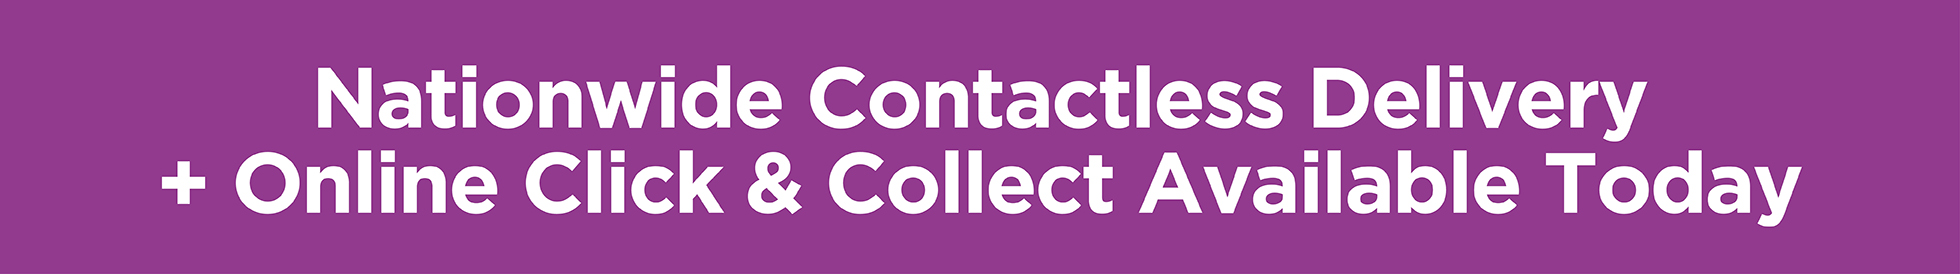 Nationwide Contactless Delivery Available + Click & Collect Available Today!